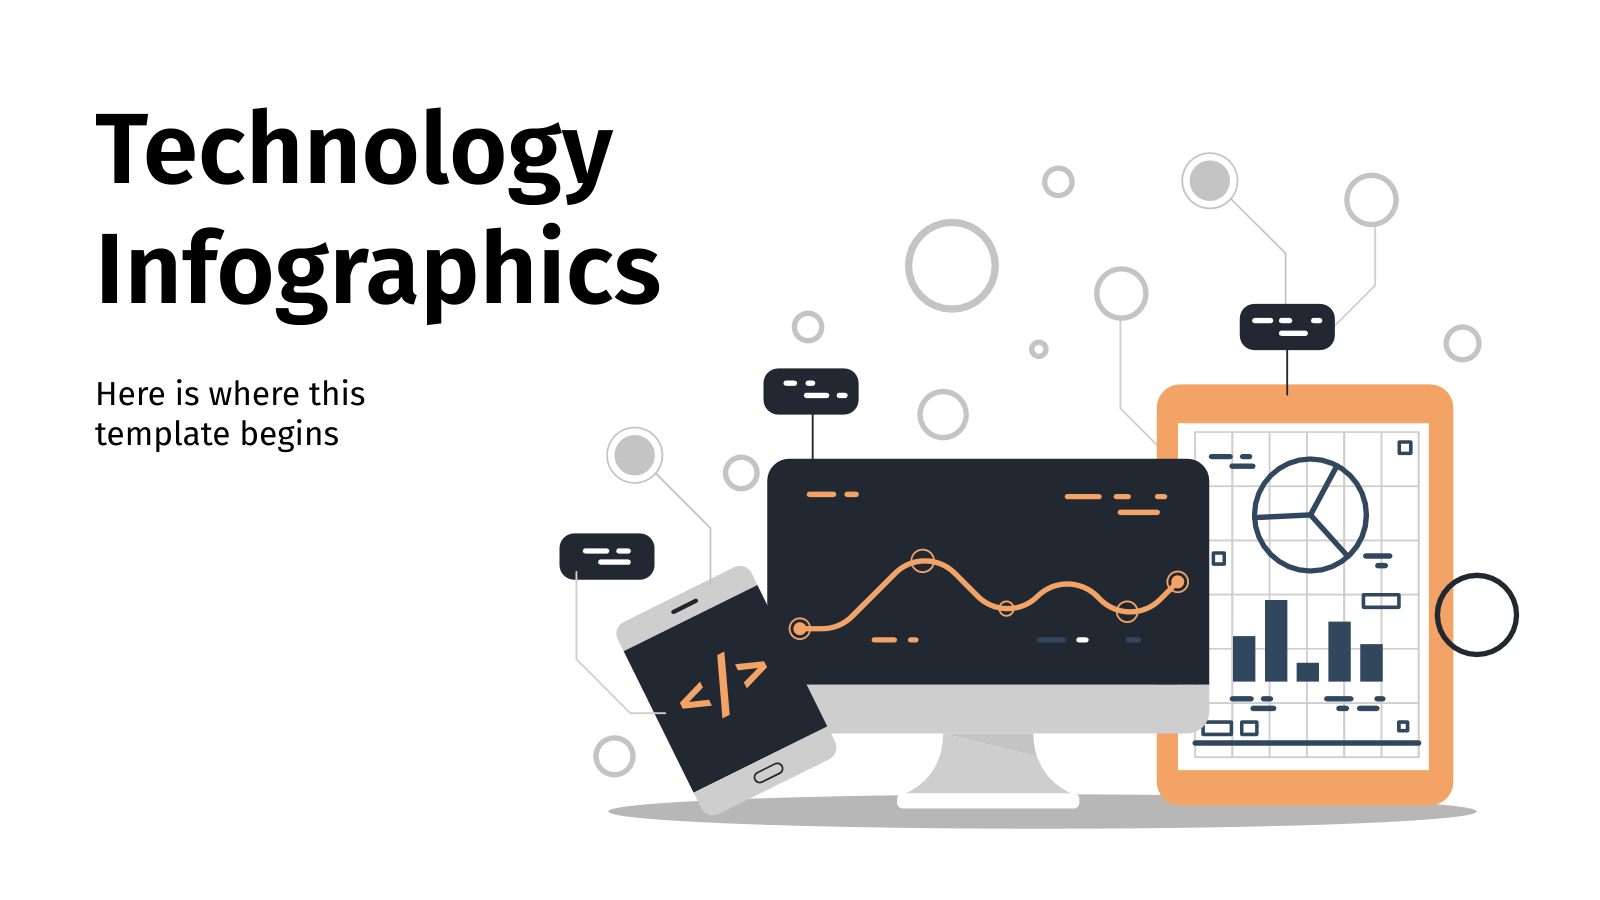 Technology Infographics presentation template